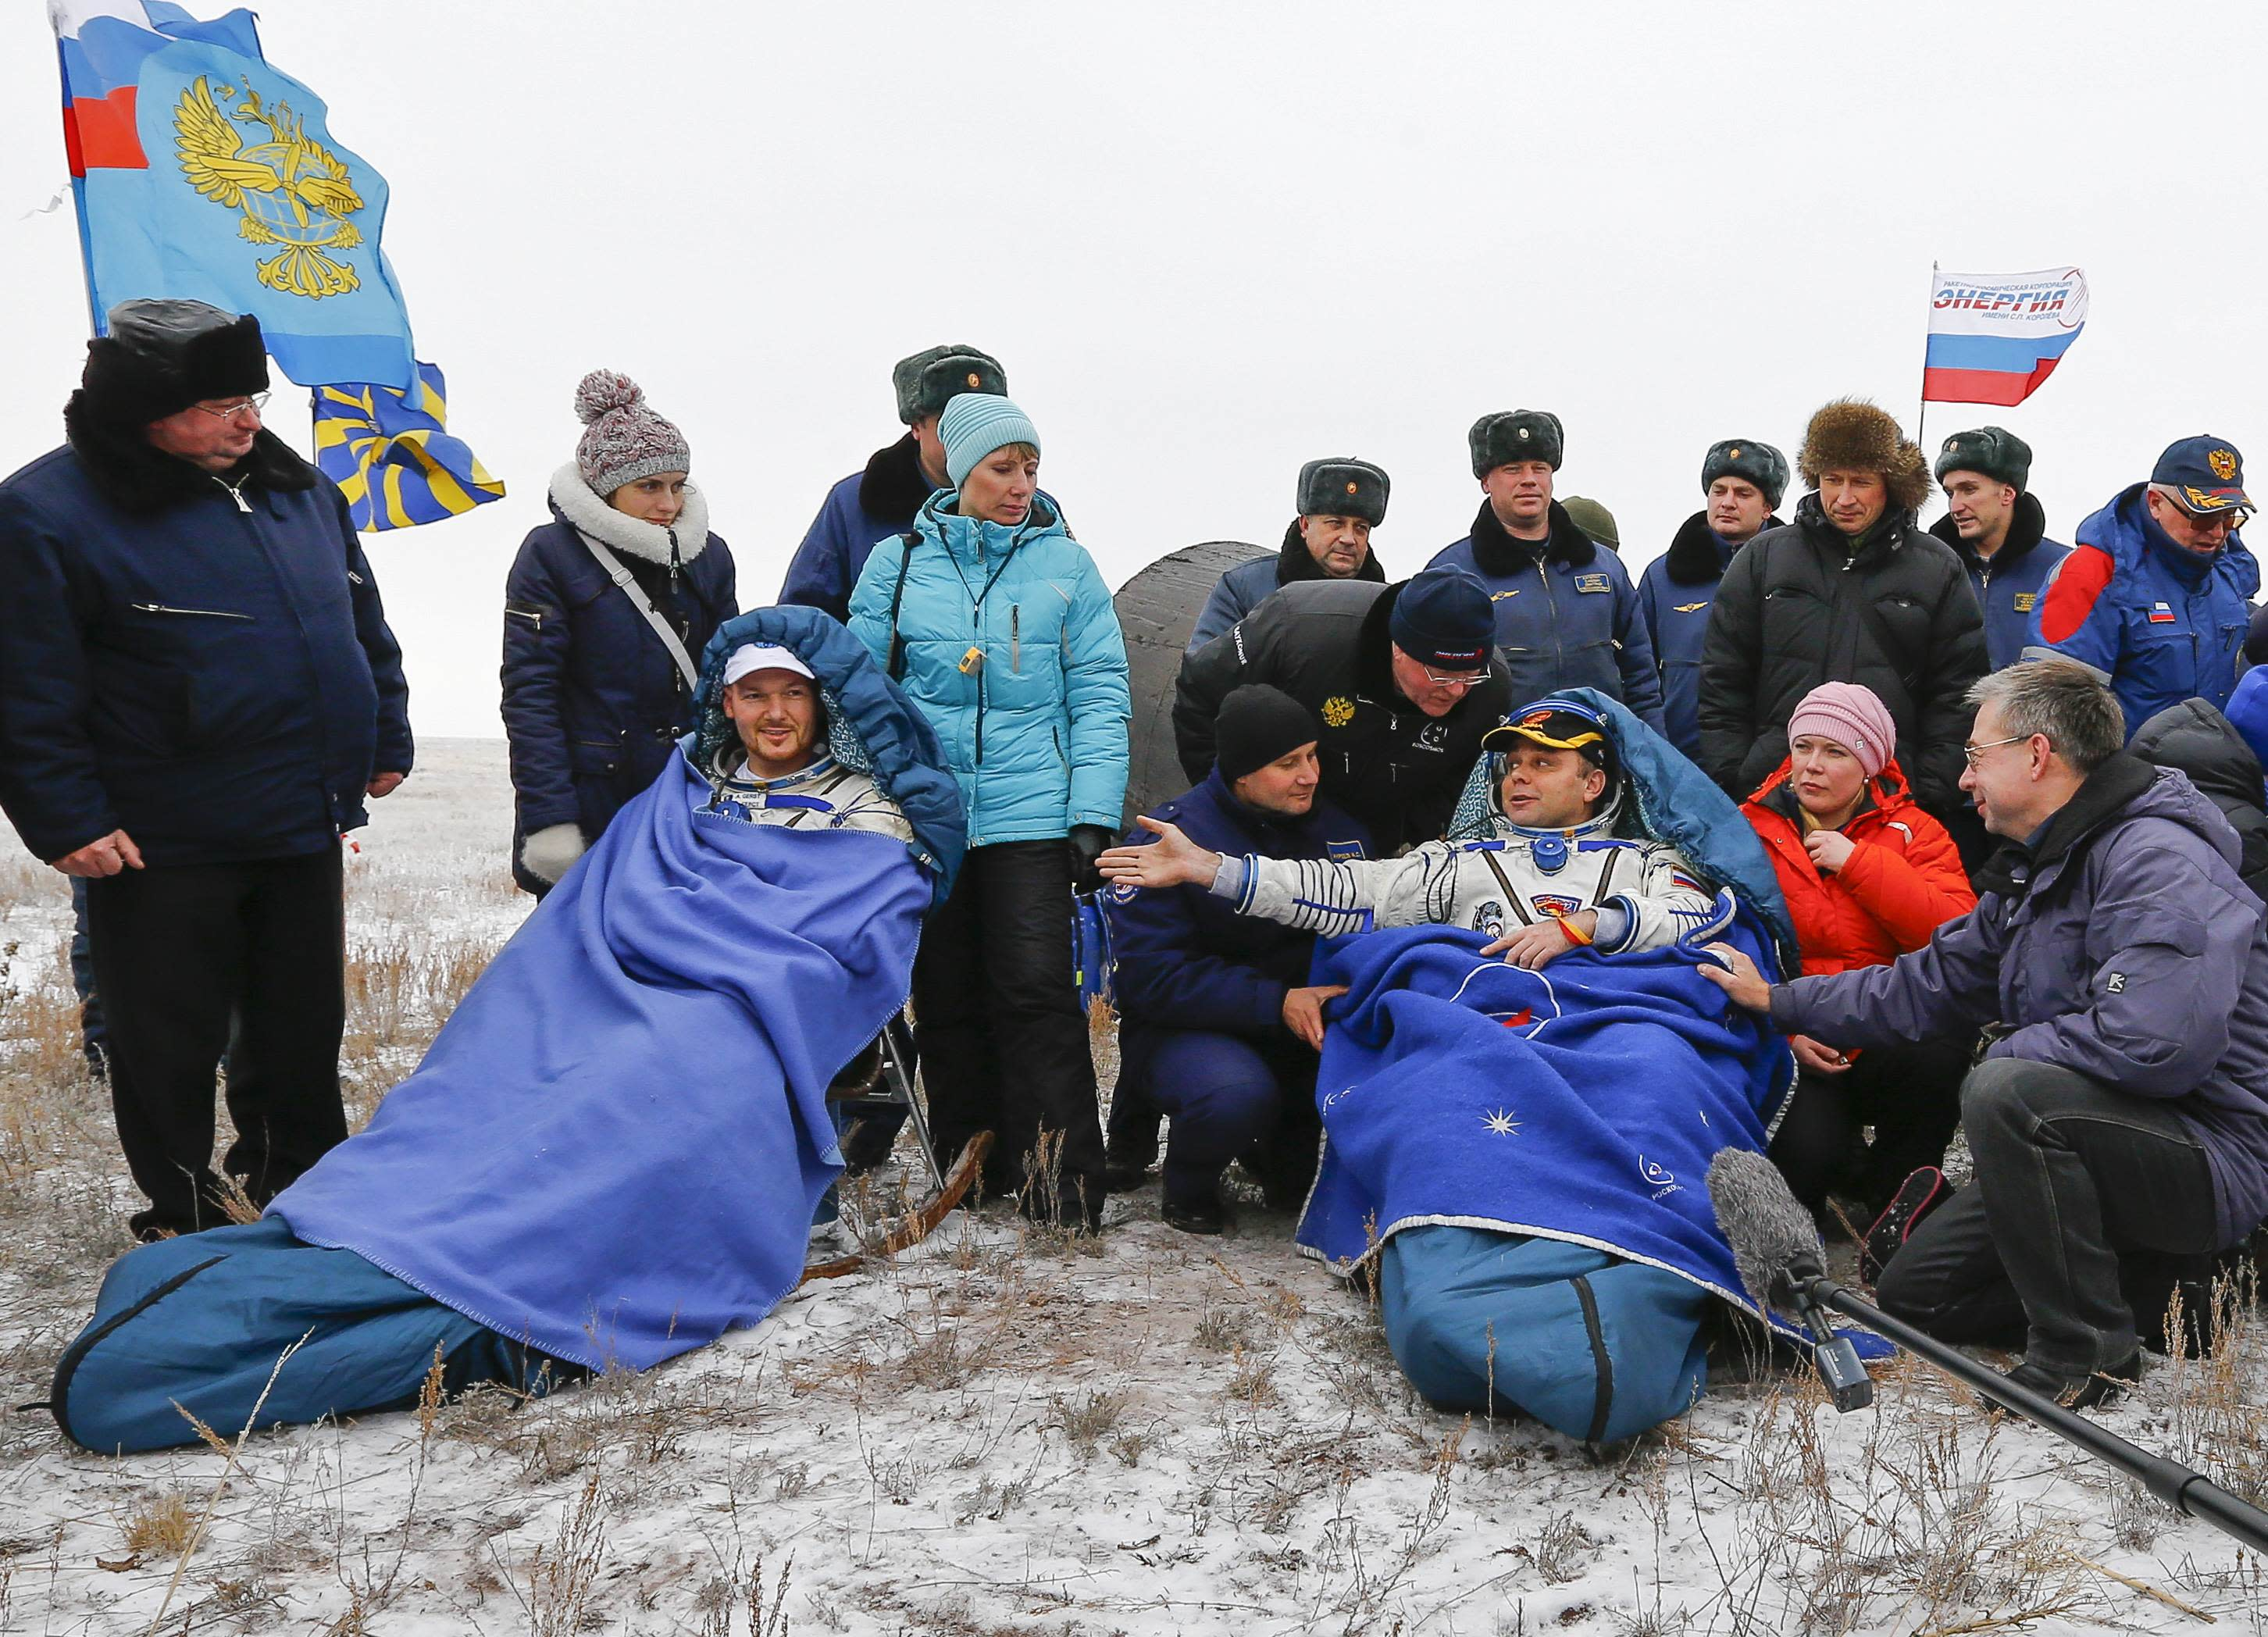 REFILE - CLARIFYING DATE OF LANDING IN SECOND SENTENCE International Space Station (ISS) crew member Maxim Suraev of Russia (R) gestures to his teammate Alexander Gerst of Germany after landing in a remote area near the town of Arkalyk in northern Kazakhstan November 10, 2014. Veteran Russian cosmonaut Suraev and two International Space Station crewmates, NASA's Reid Wiseman from the United States and Gerst from Germany, returned safely to Earth on Monday with a parachute landing of their Soyuz capsule in Kazakhstan, ending 5-1/2 months in orbit. REUTERS/Shamil Zhumatov (KAZAKHSTAN - Tags: SCIENCE TECHNOLOGY)